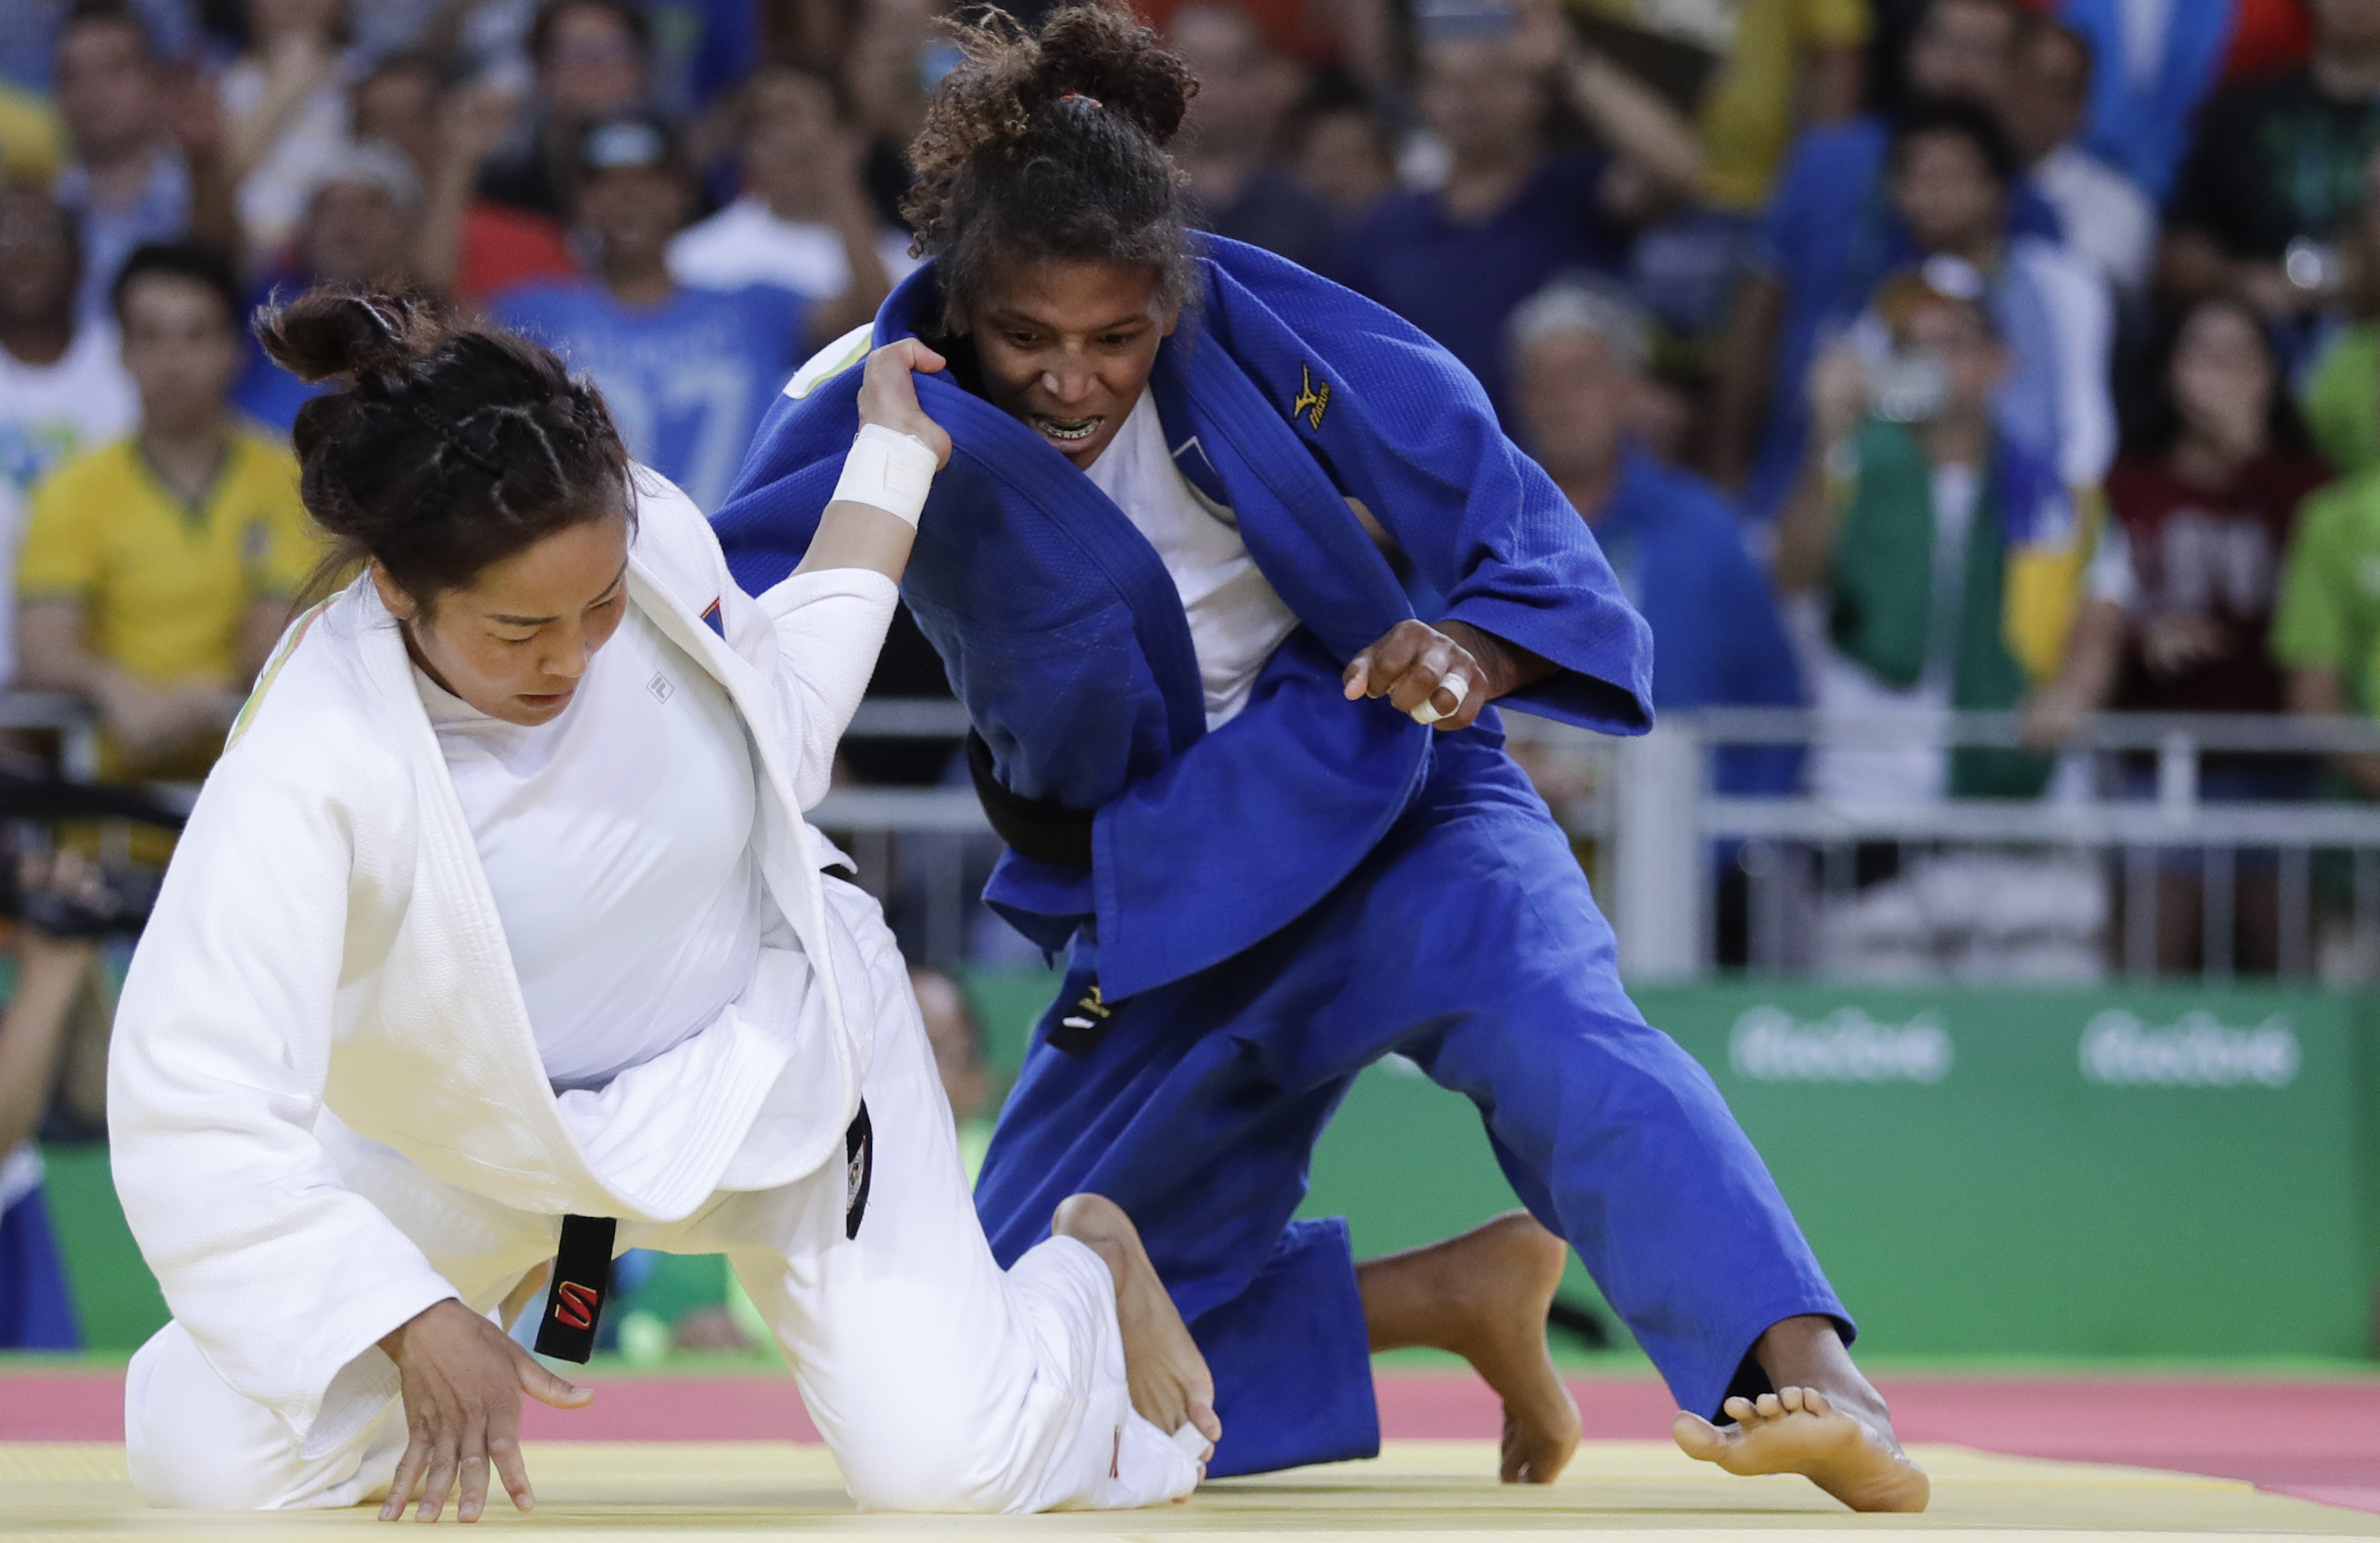 FILE - In this Aug. 8, 2016, file photo, Brazil's Rafaela Silva, right, competes with Mongolia's Sumiya Dorjsuren for the gold medal of the women's 57-kg judo competition at the 2016 Summer Olympics in Rio de Janeiro, Brazil. Brazil is trying to take adva